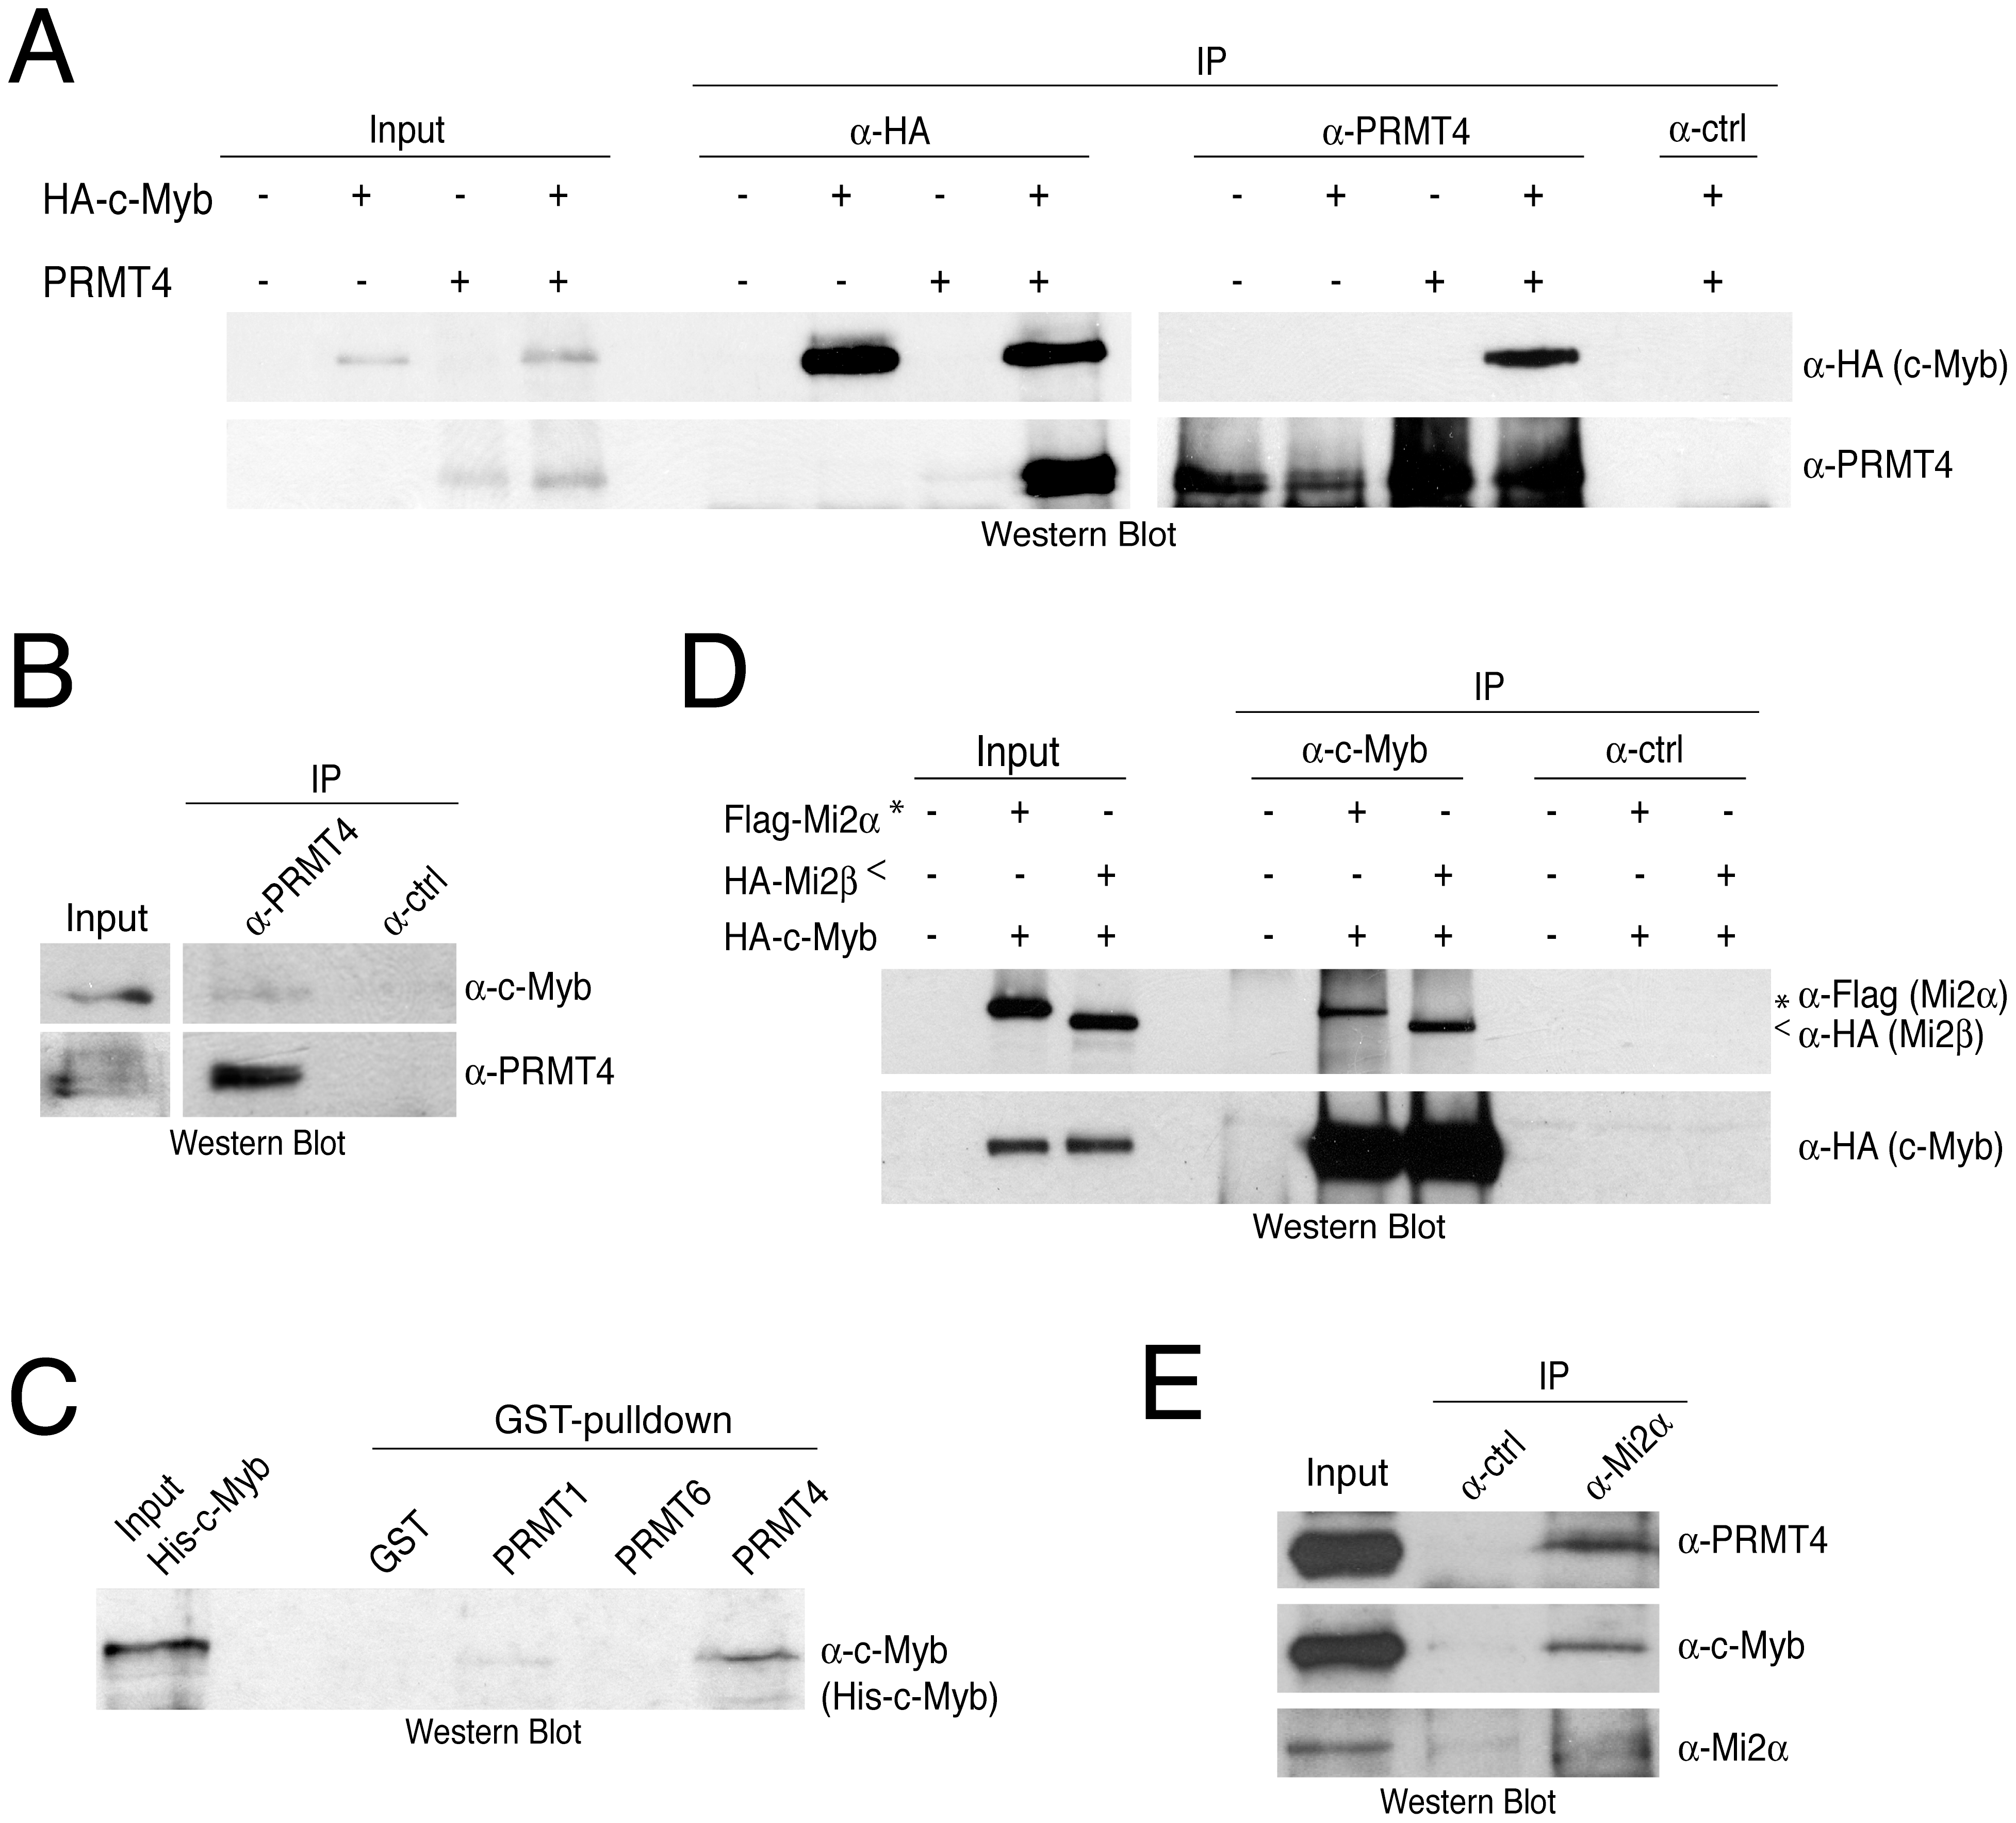 PRMT4 and Mi2 interact with the transcription factor c-Myb.